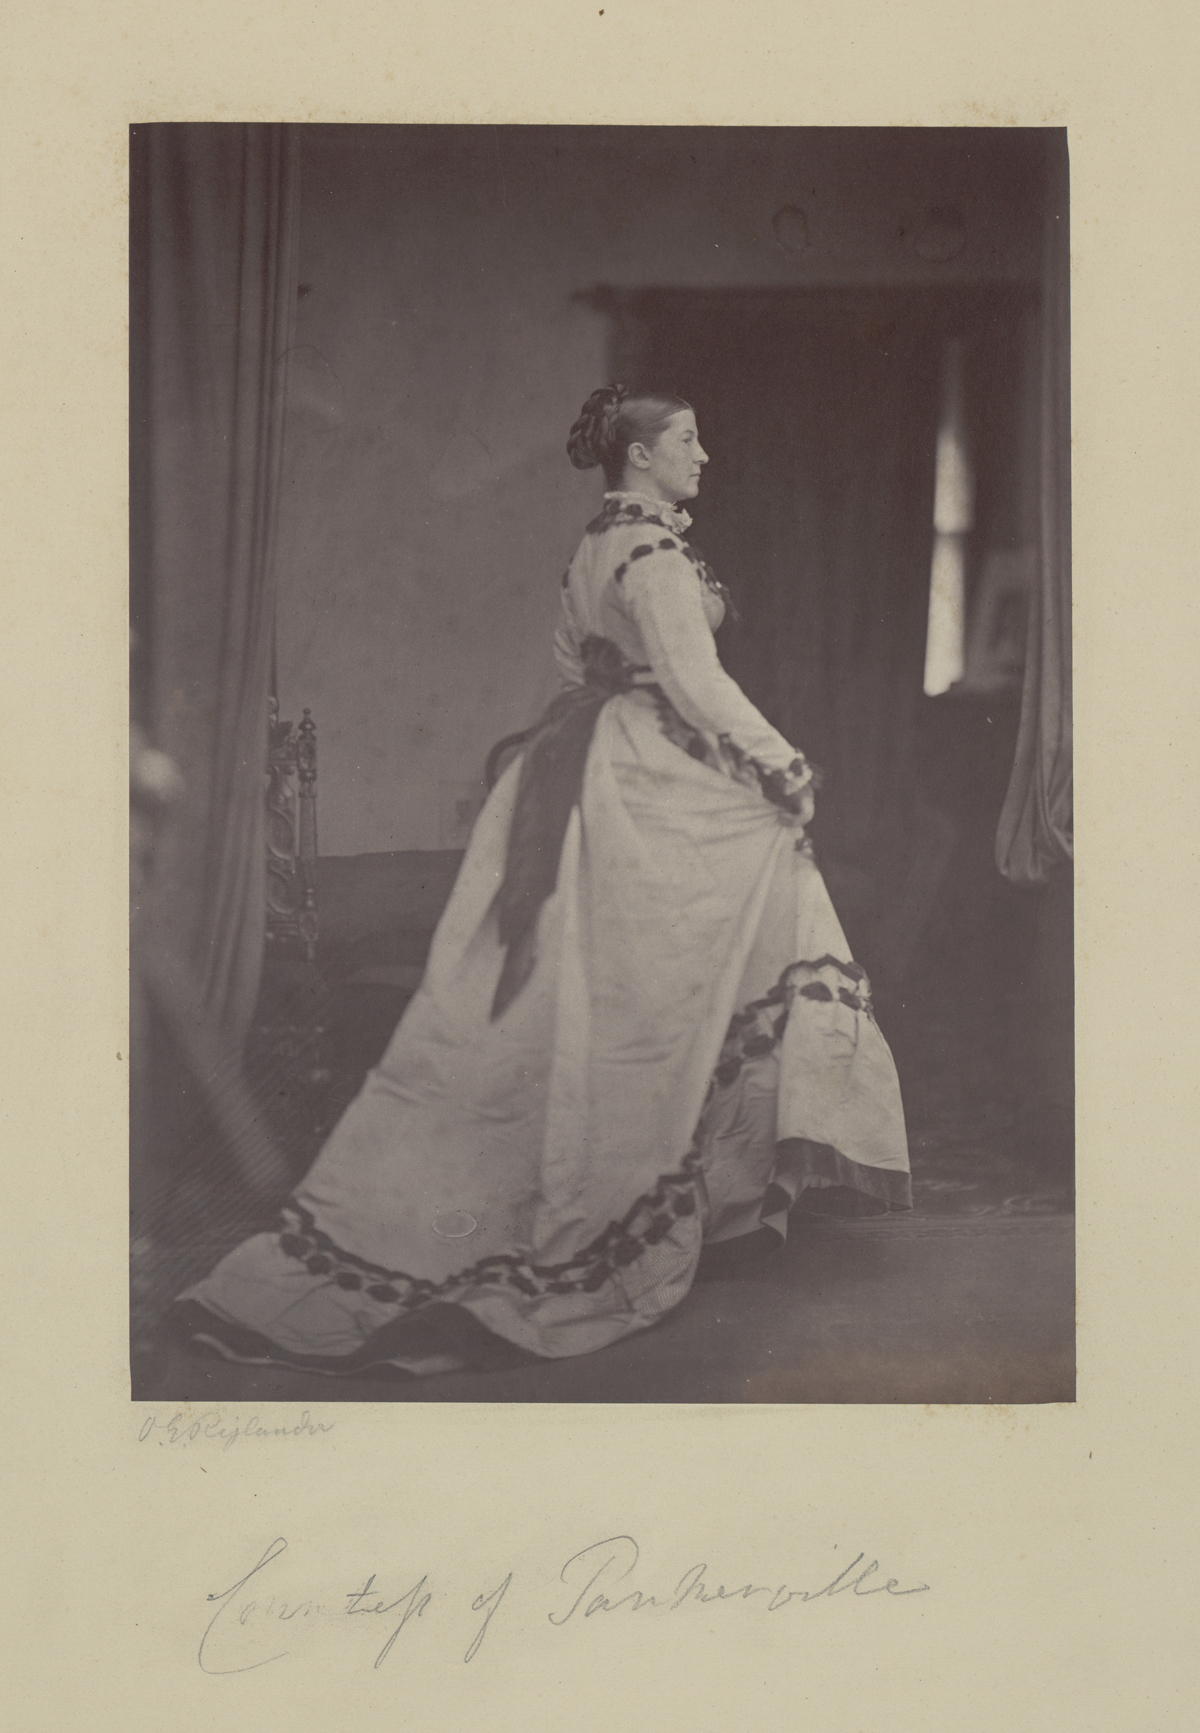 Oscar Gustave Rejlander, The Countess of Tankerville, 1866. Albumen print, 22.3 x 16.3 cm (image). Gernsheim collection.